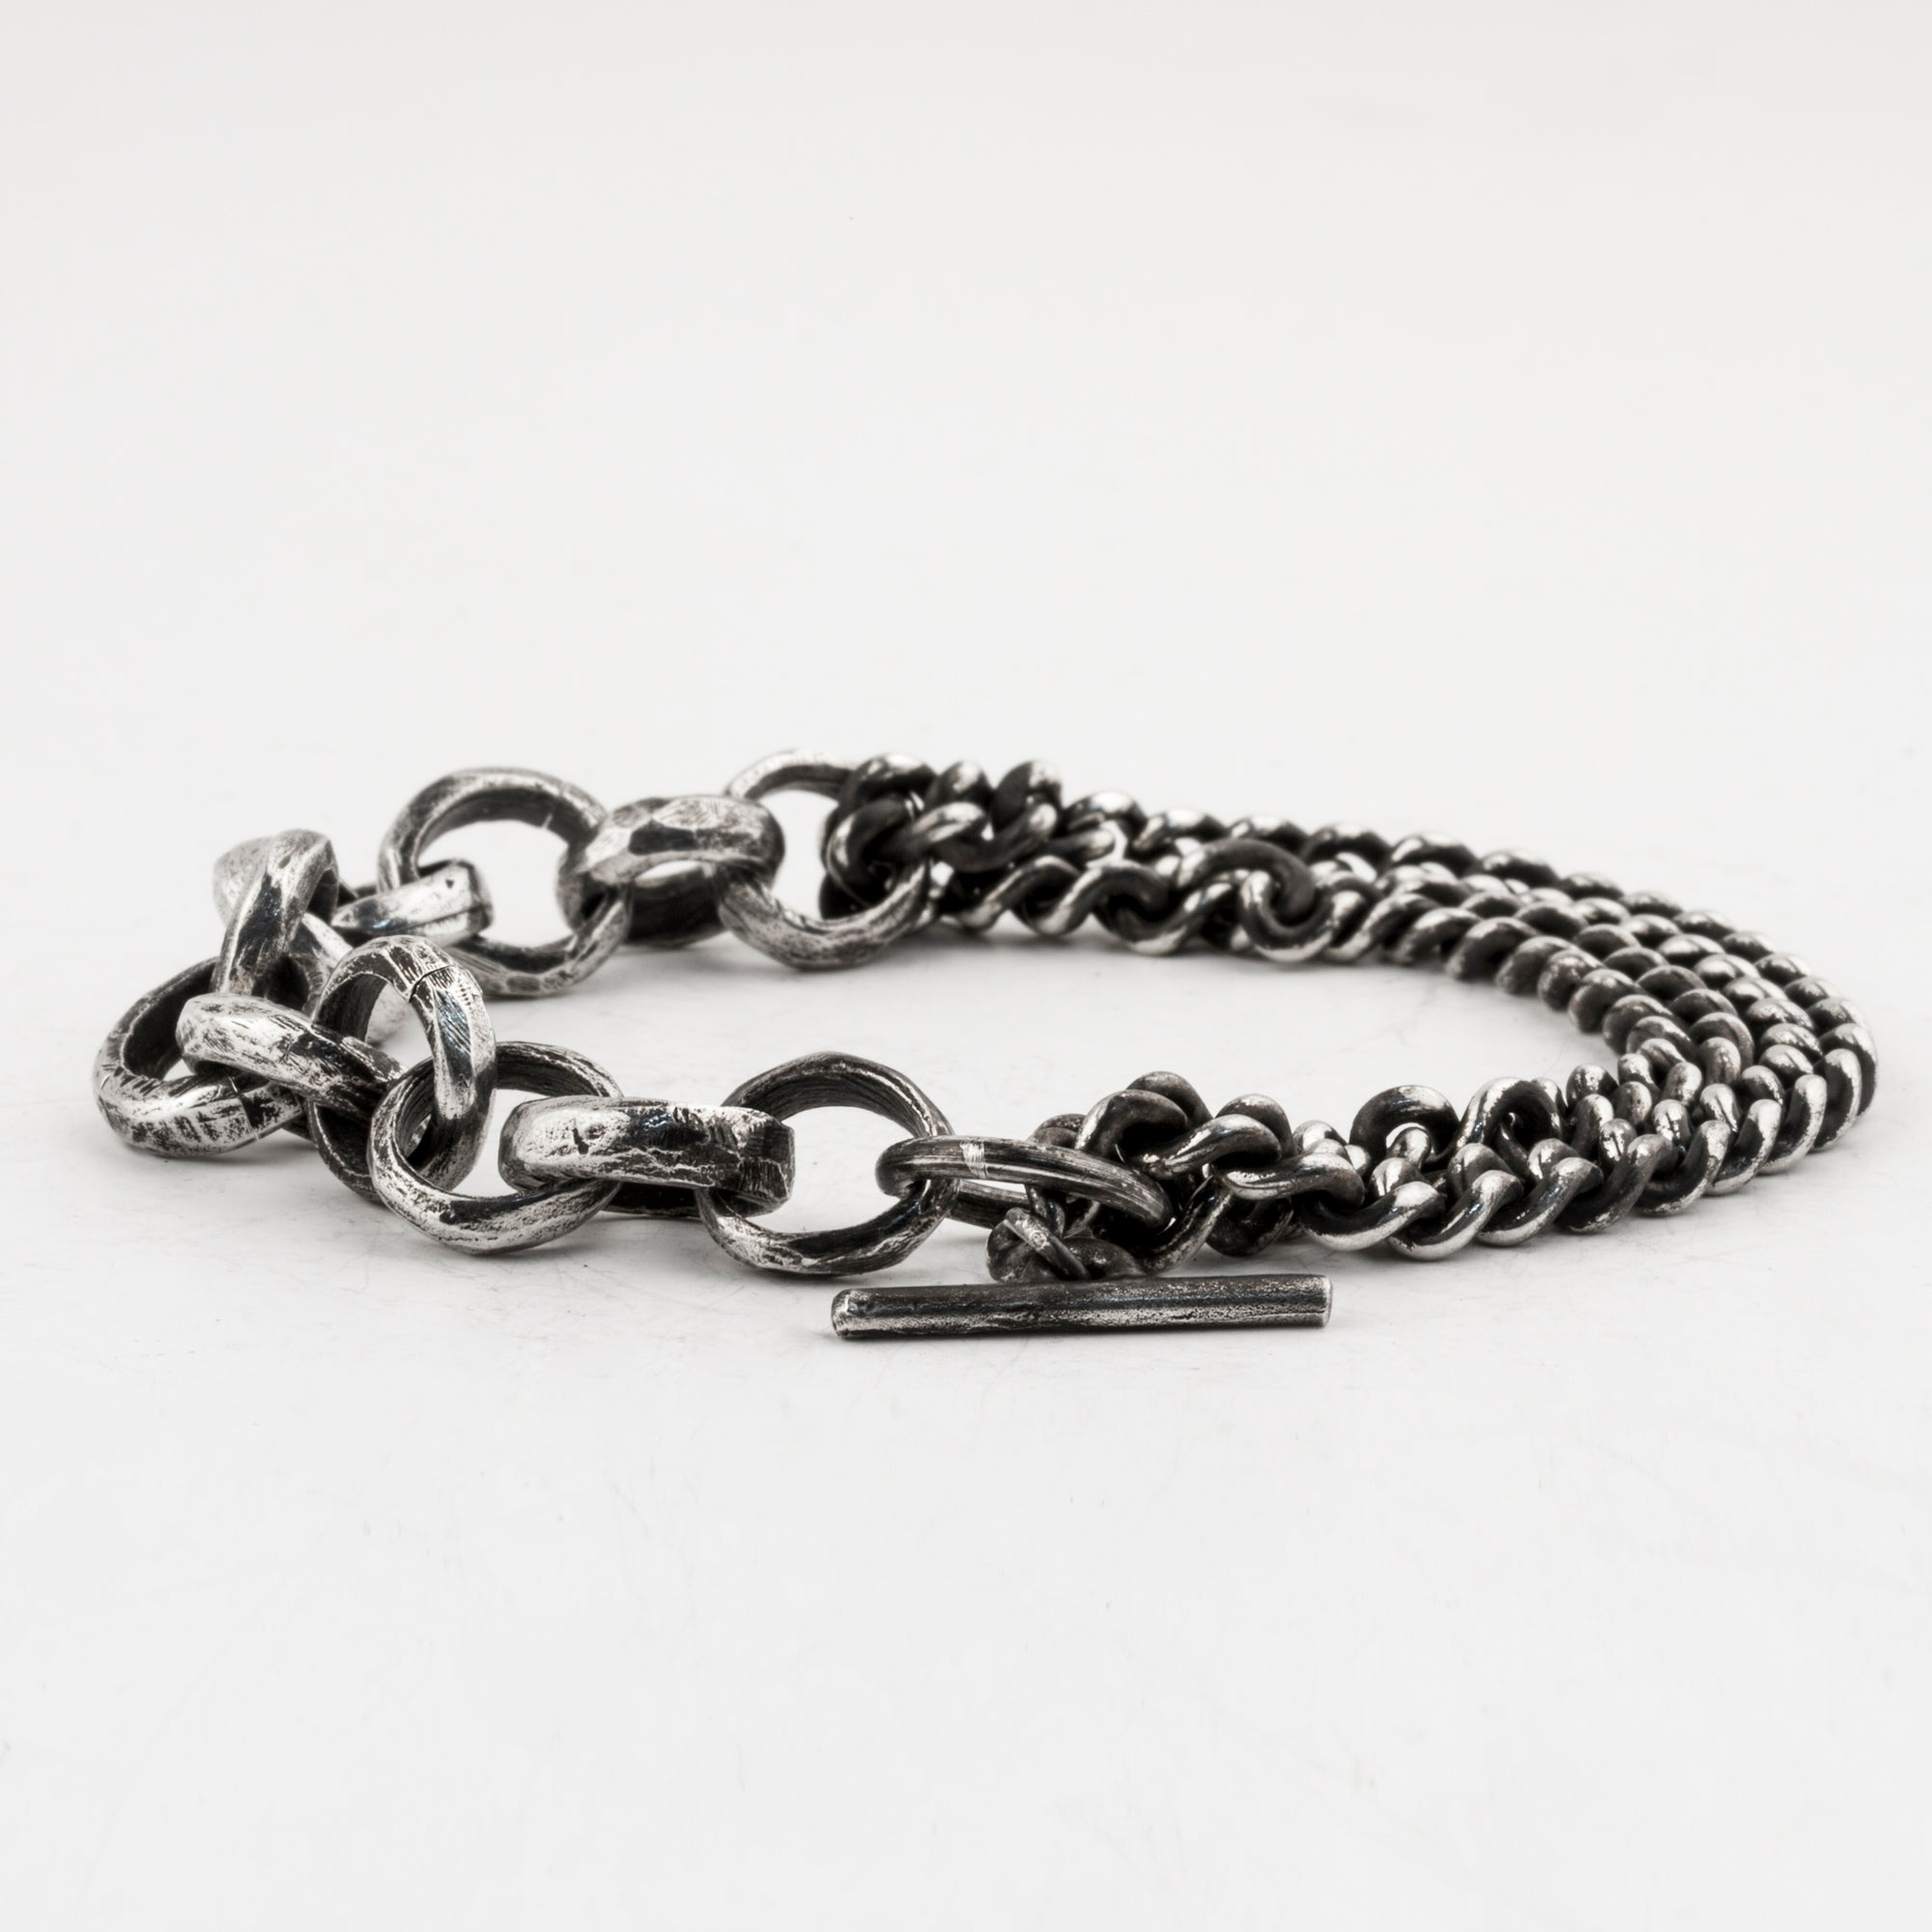 Carved Links and Curb Chain Bracelet